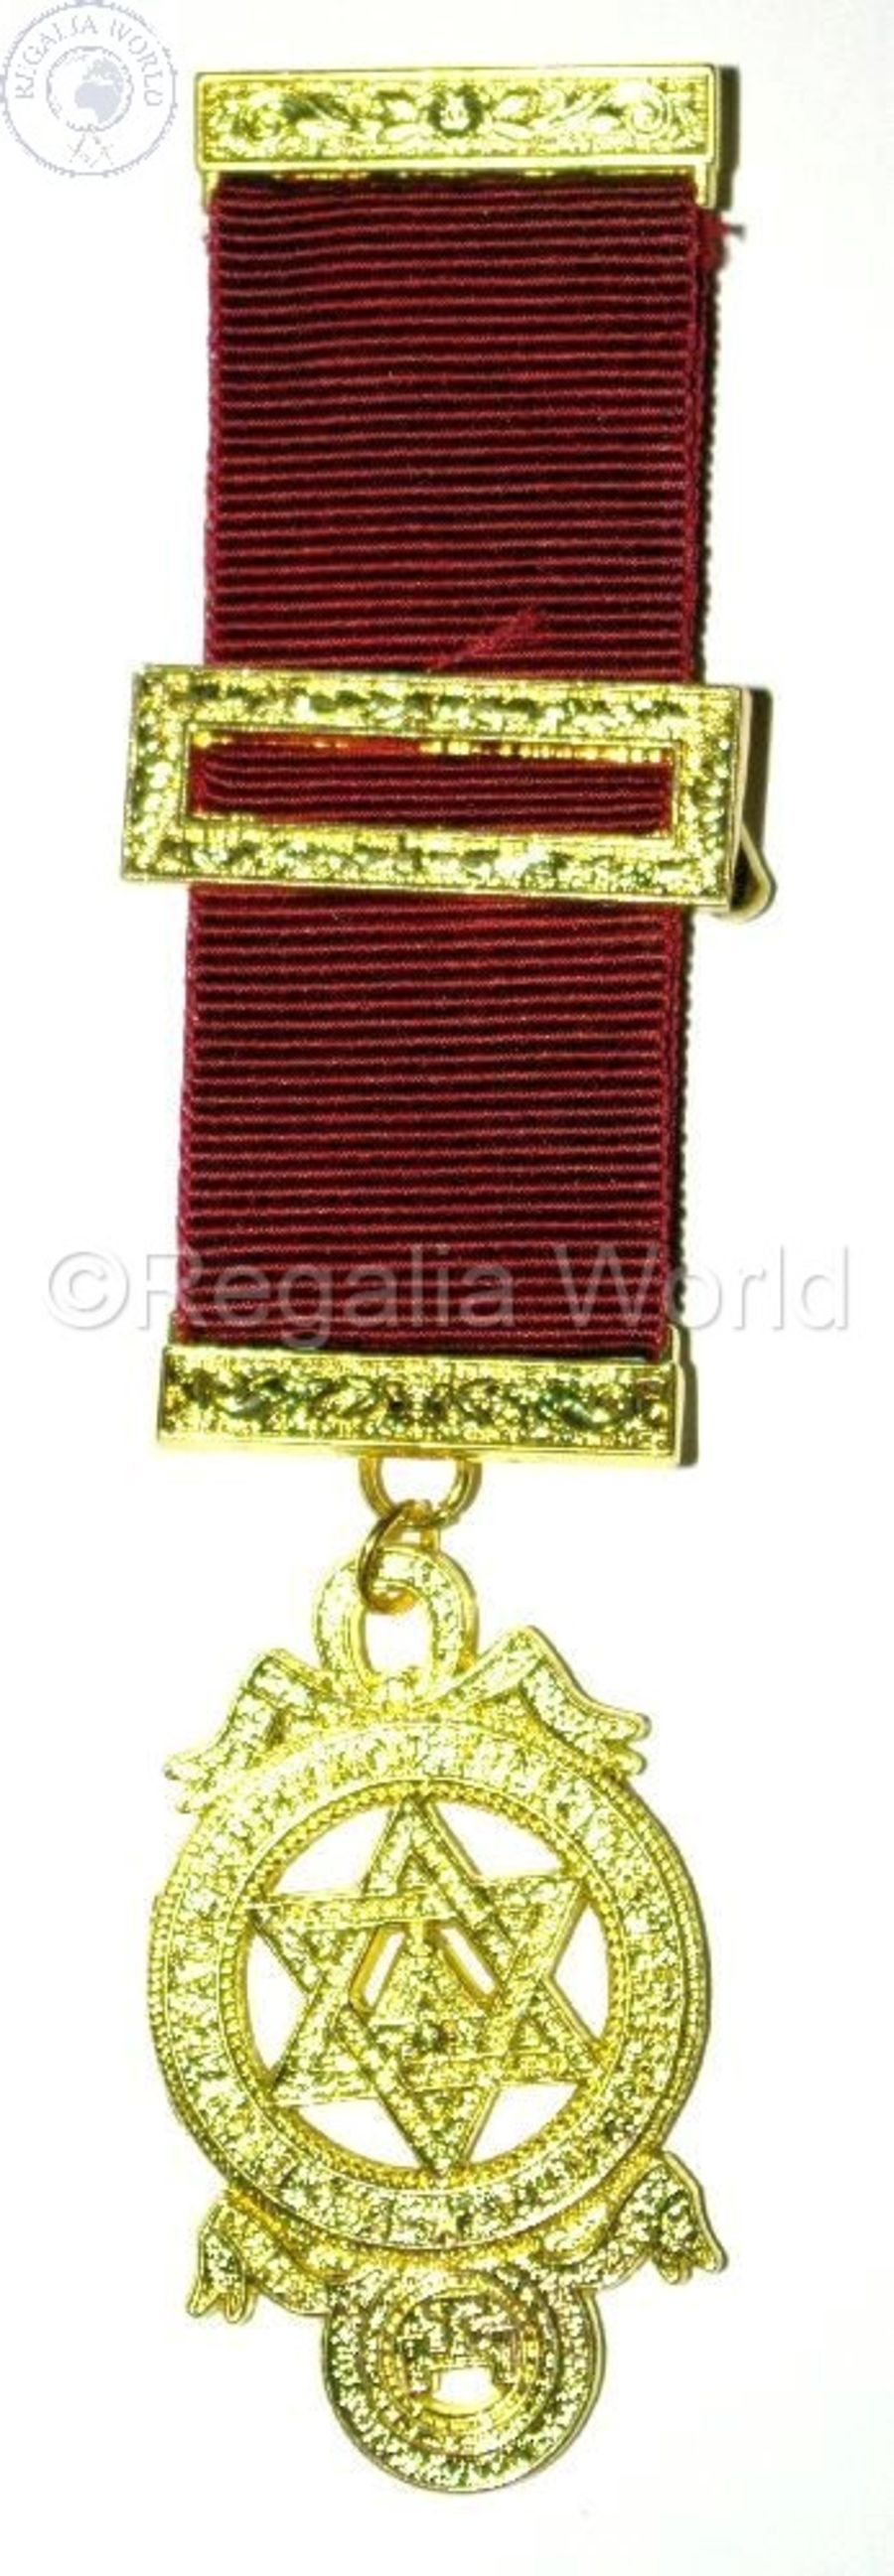 RA Principals Breast Jewel